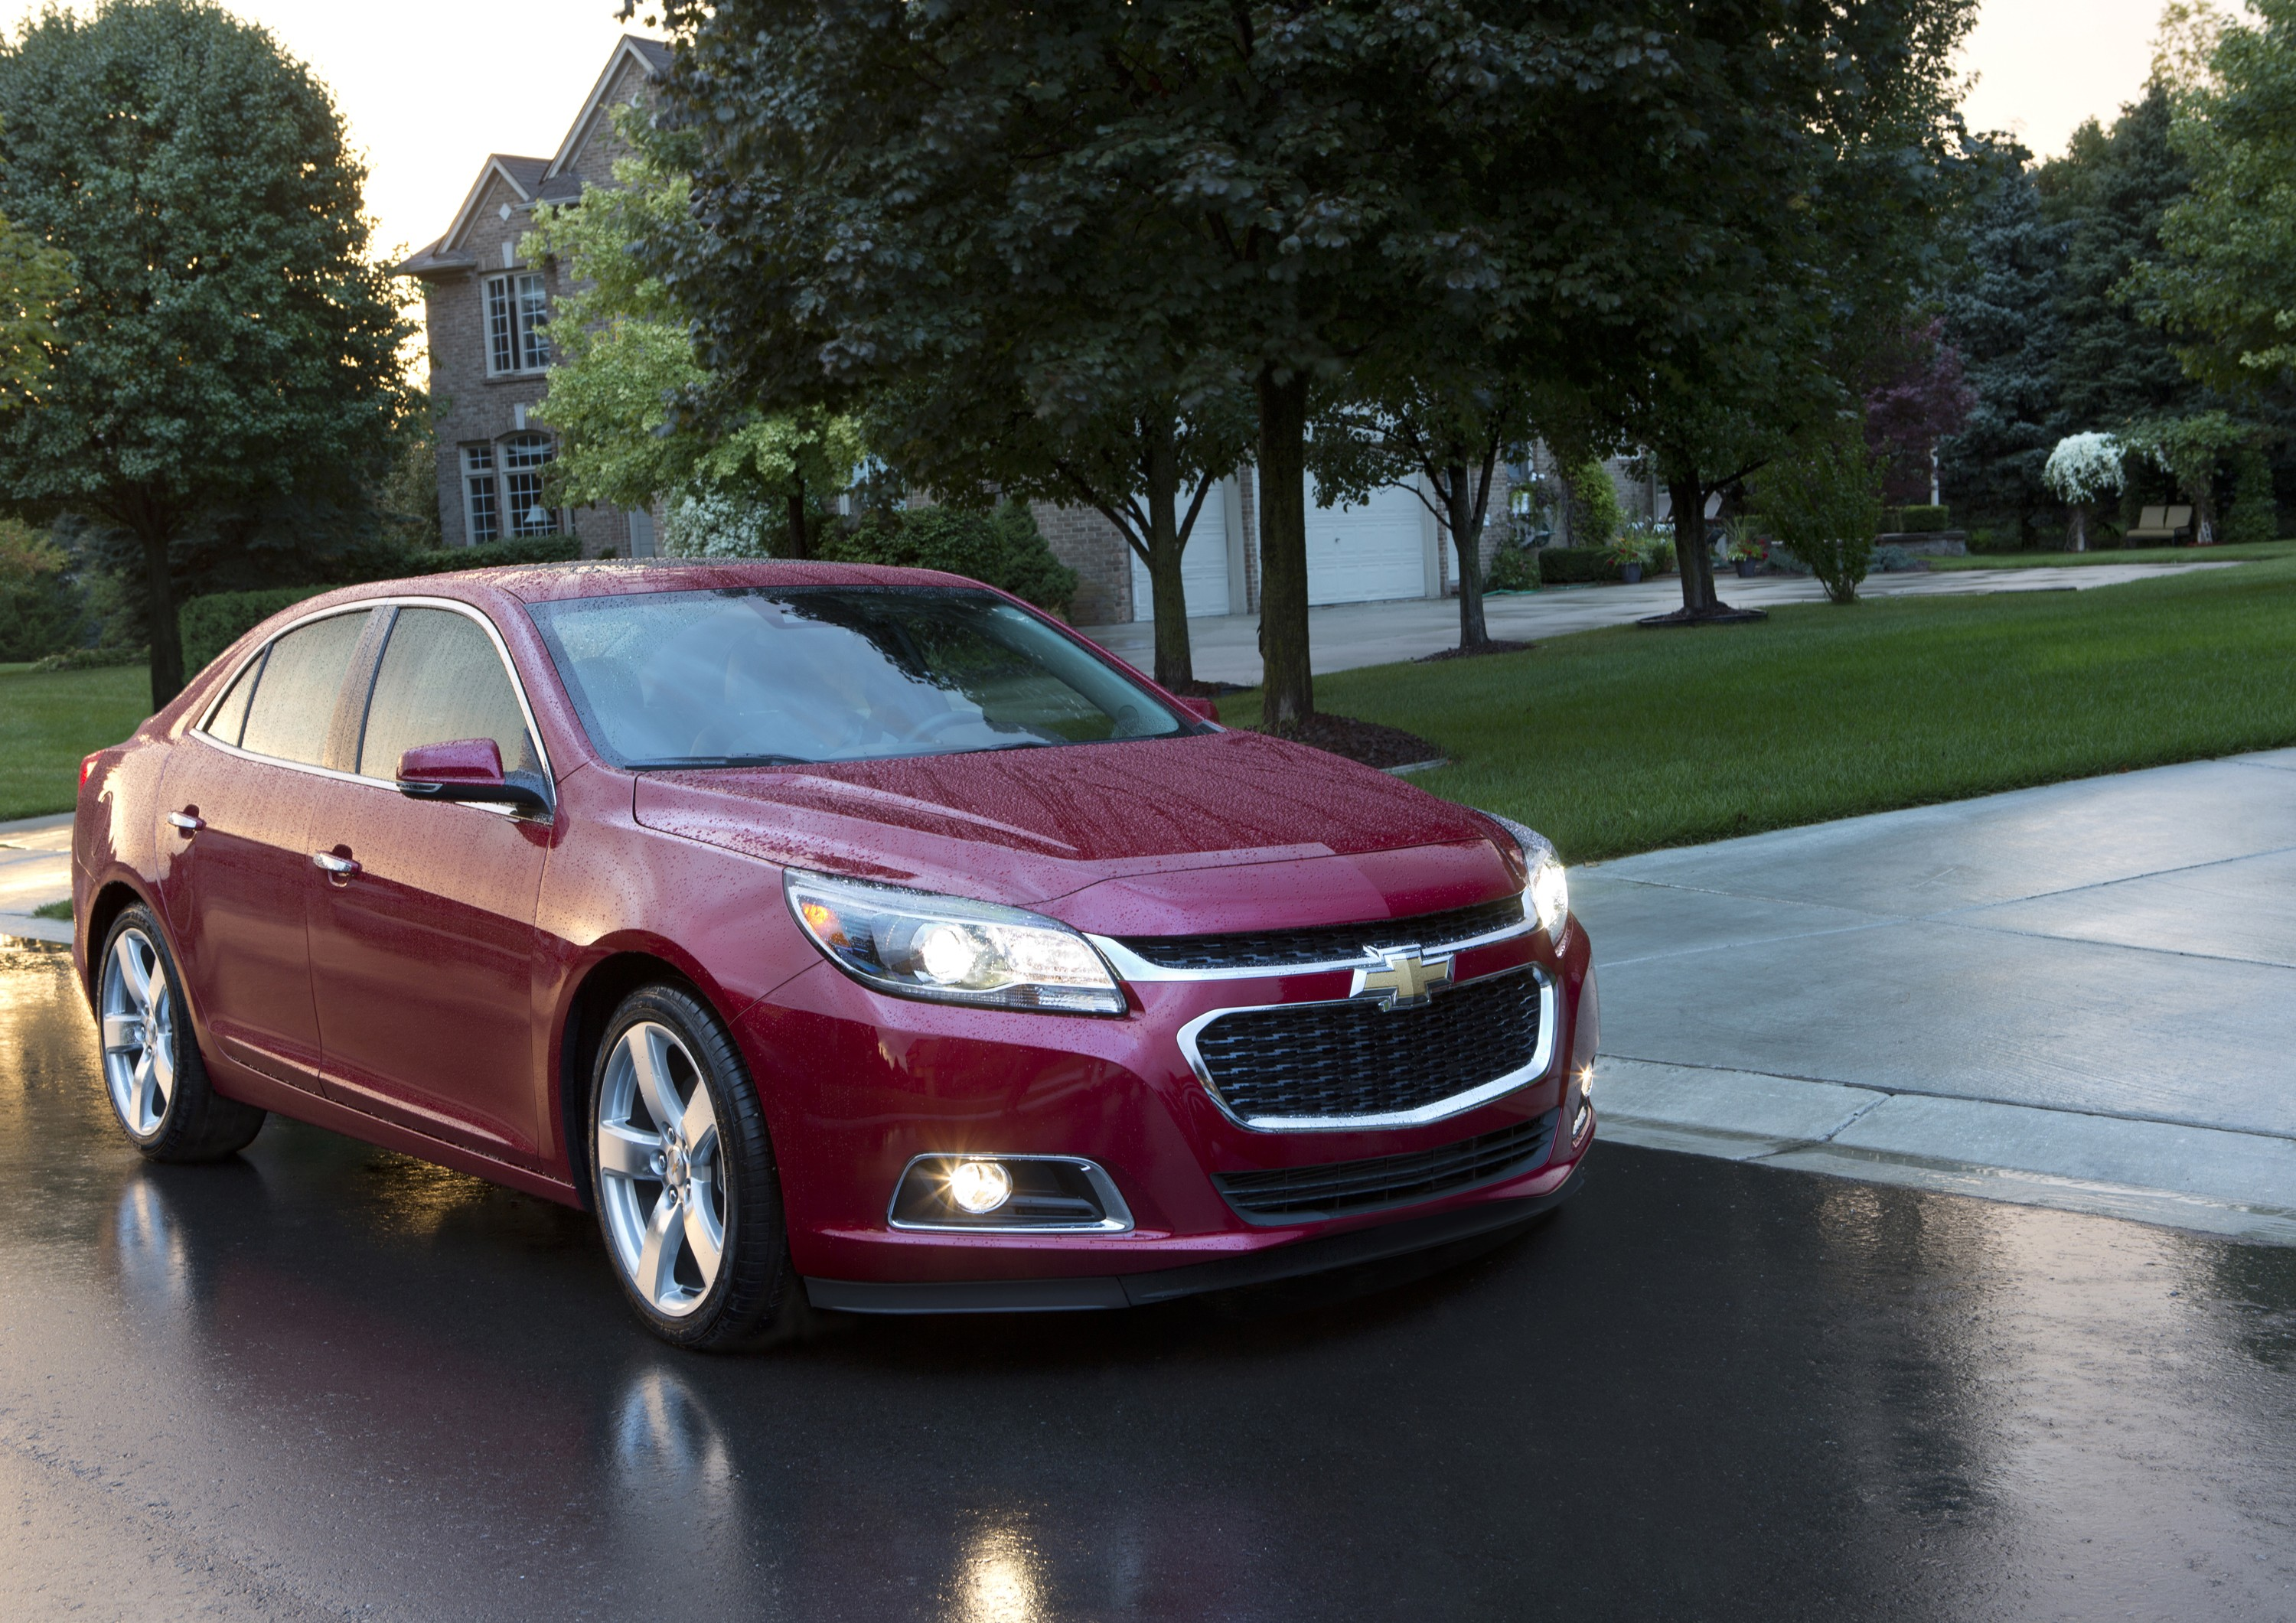 nov pages home detail us en models all chevrolet priced new content pricing news exterior cruze from media